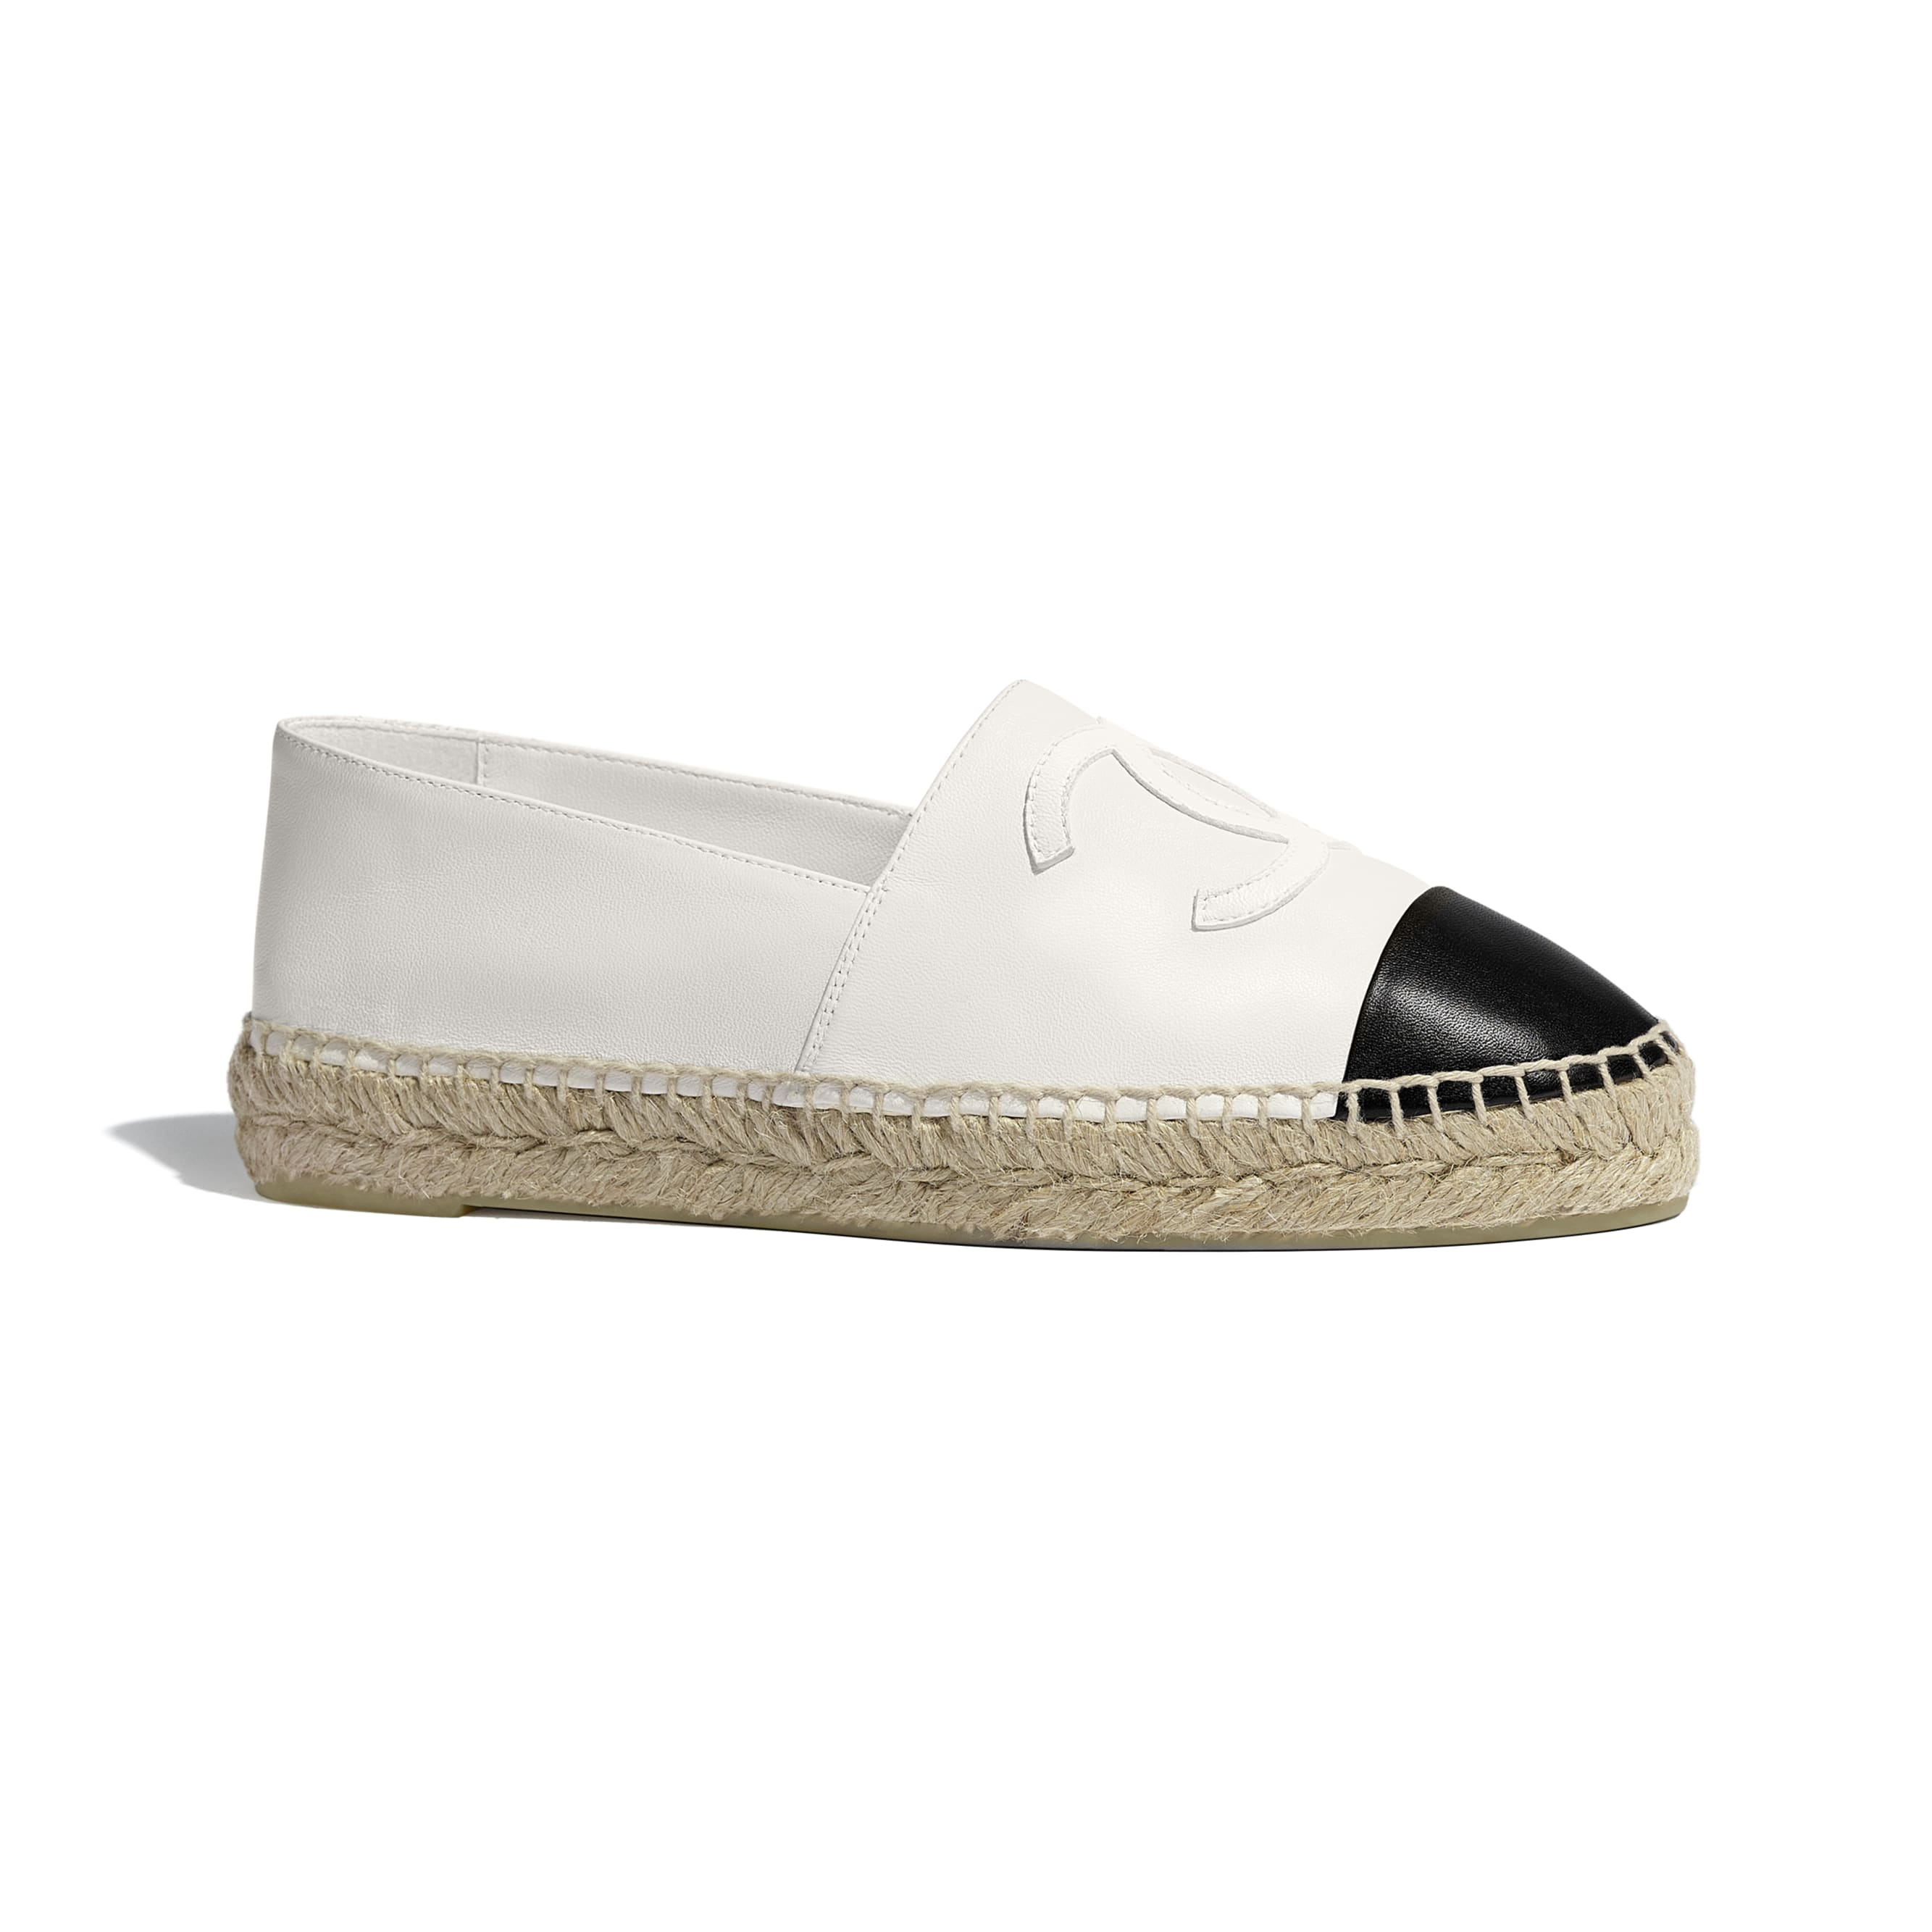 Espadrilles - White & Black - Lambskin - CHANEL - Default view - see standard sized version